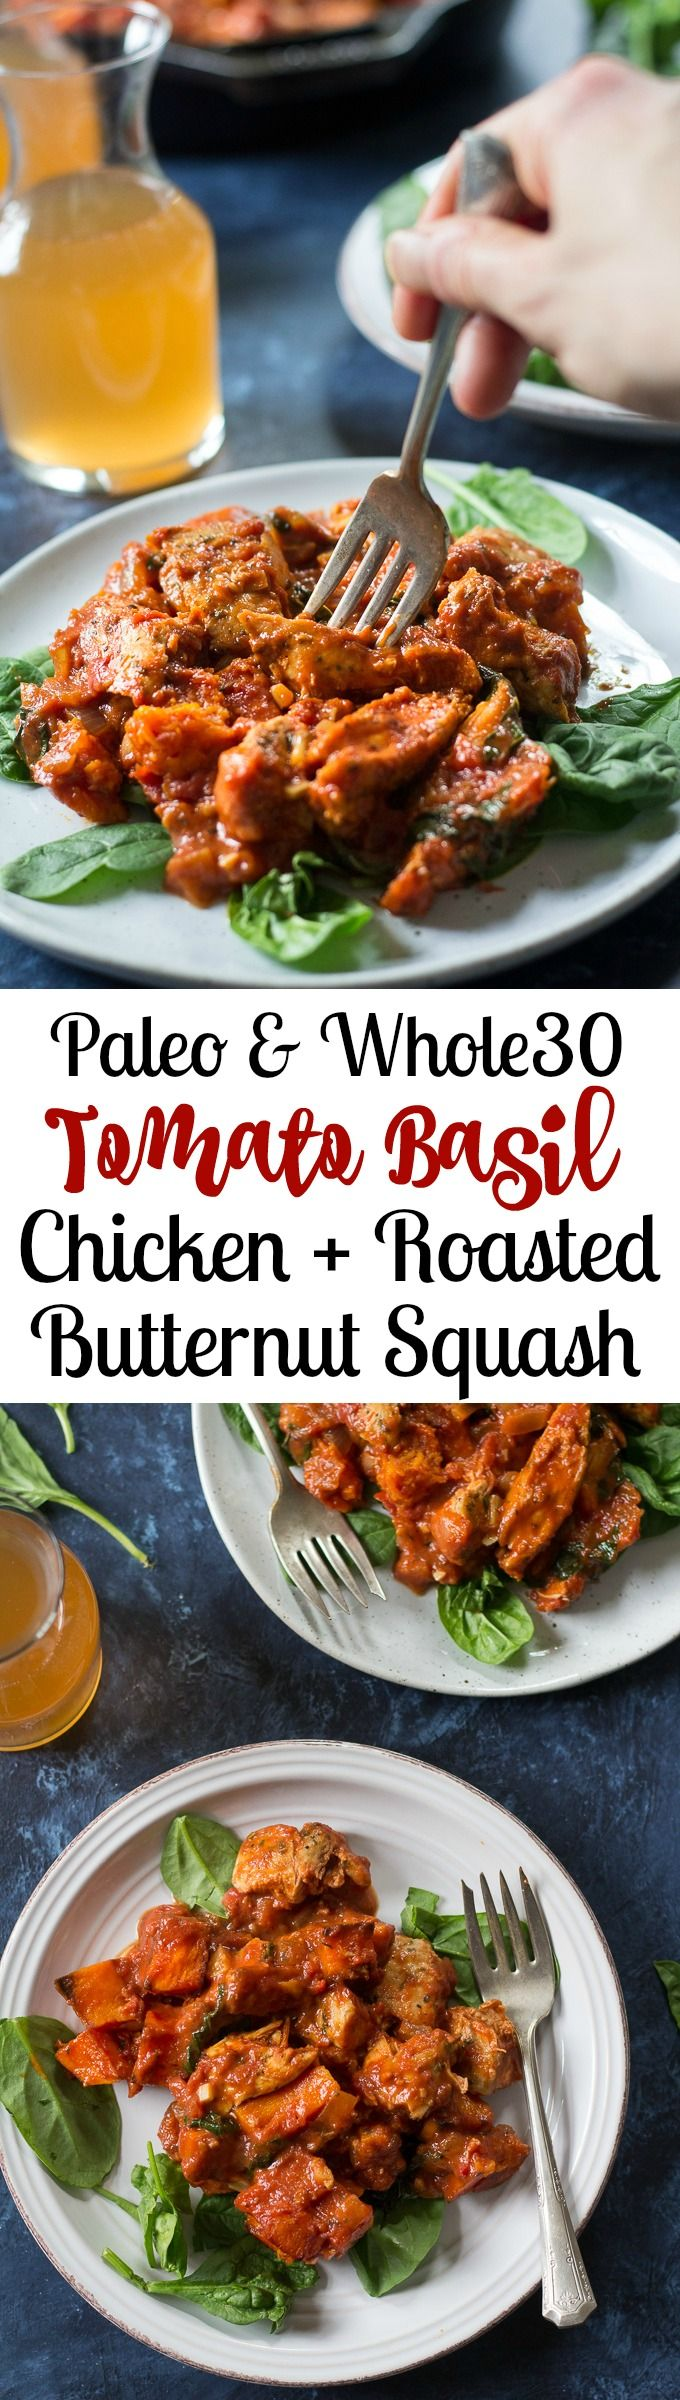 Perfectly seasoned chicken in a creamy, flavor-packed tomato basil sauce with sweet-savory toasty butternut. Paleo and Whole30 compliant dinner and great for next-day leftovers!